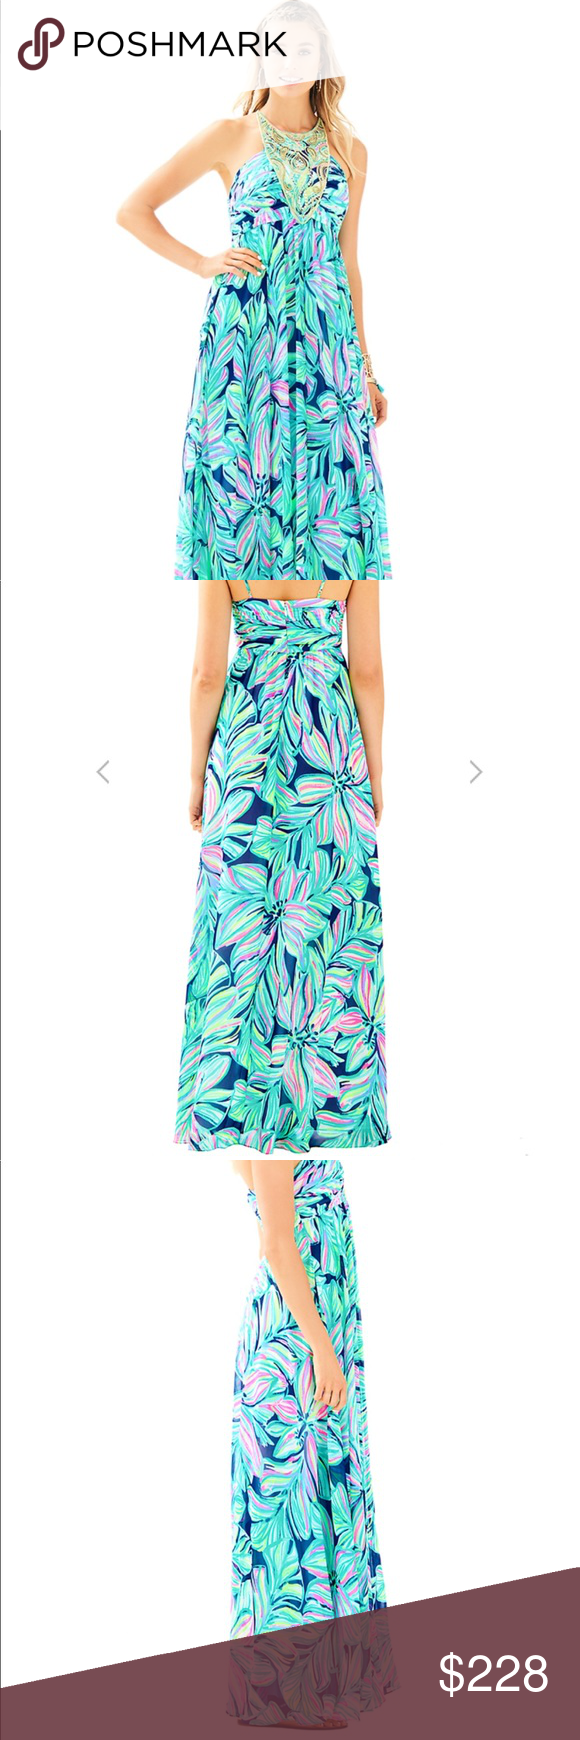 3545b134663aca NWT Lilly Pulitzer's LANNETTE MAXI DRESS NWT showstopping maxi moment. The Lannette  Maxi Dress is